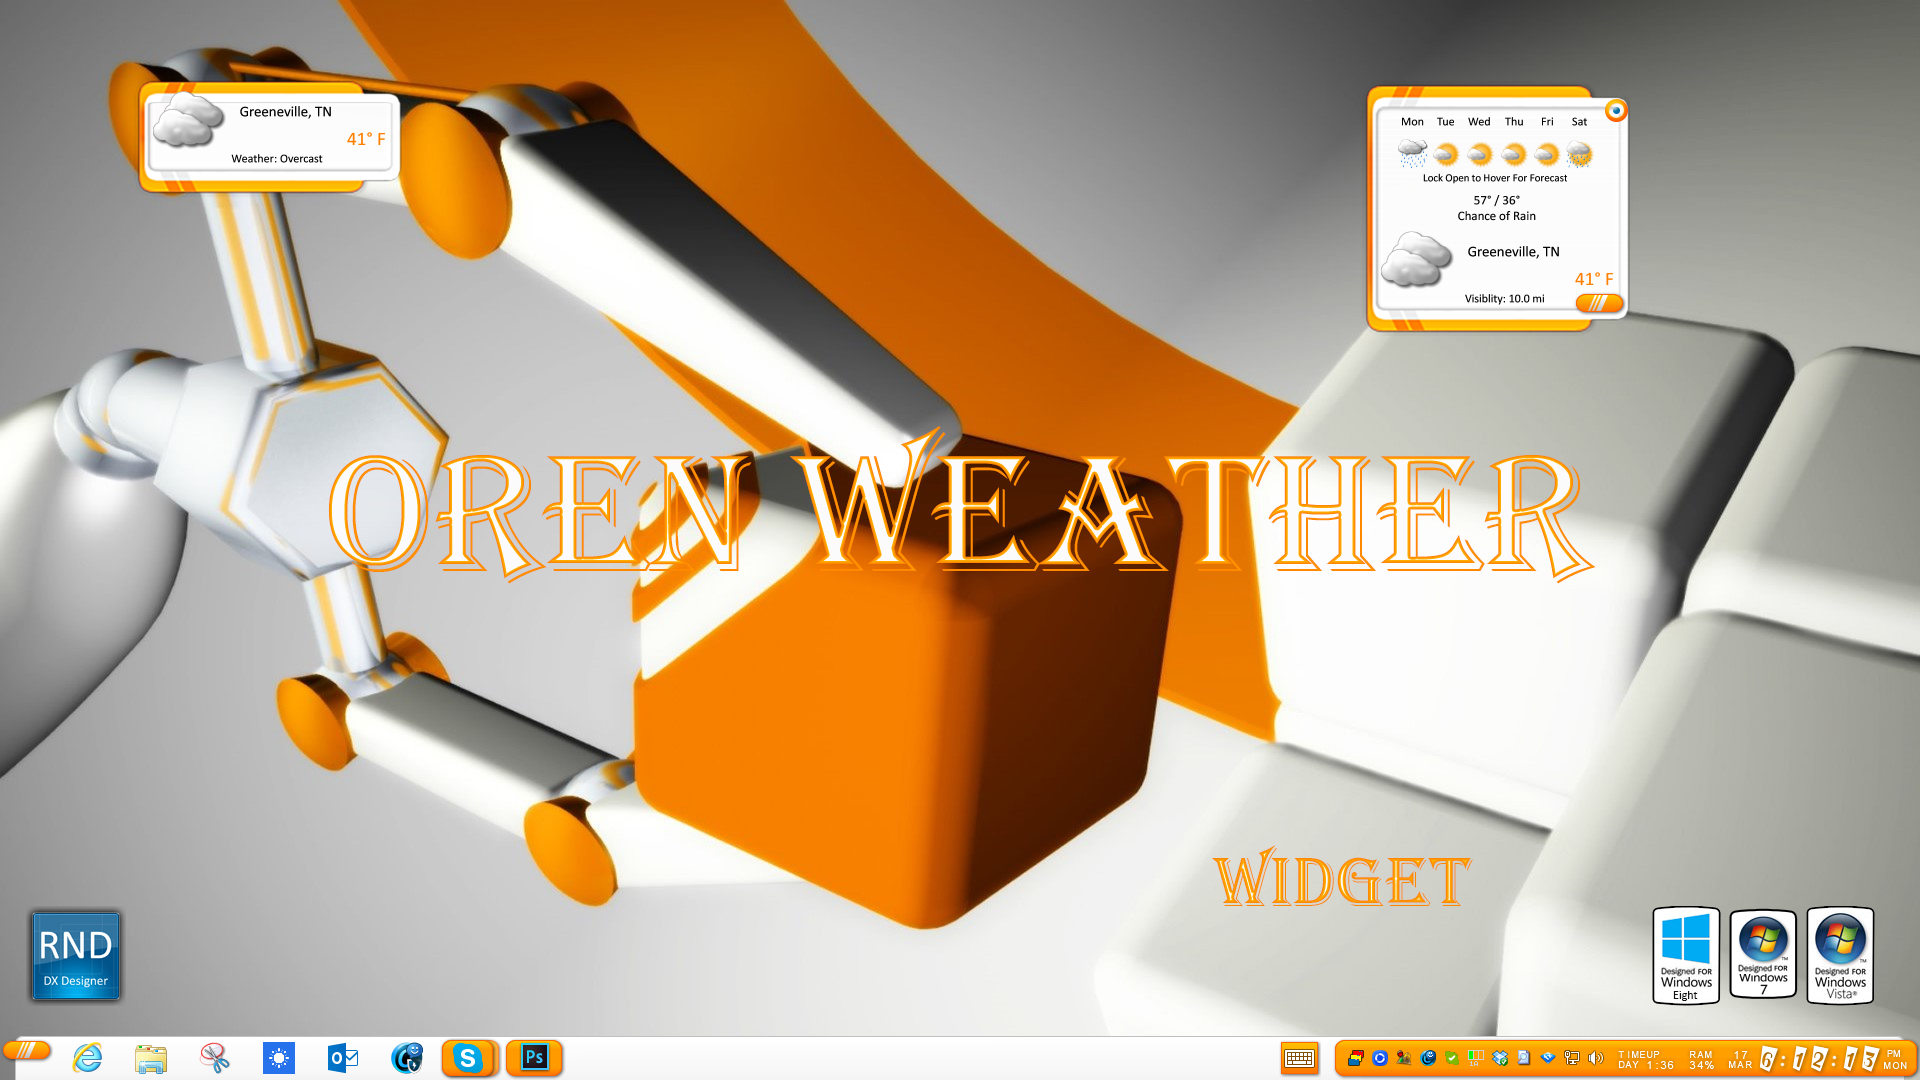 Oren Weather Widget